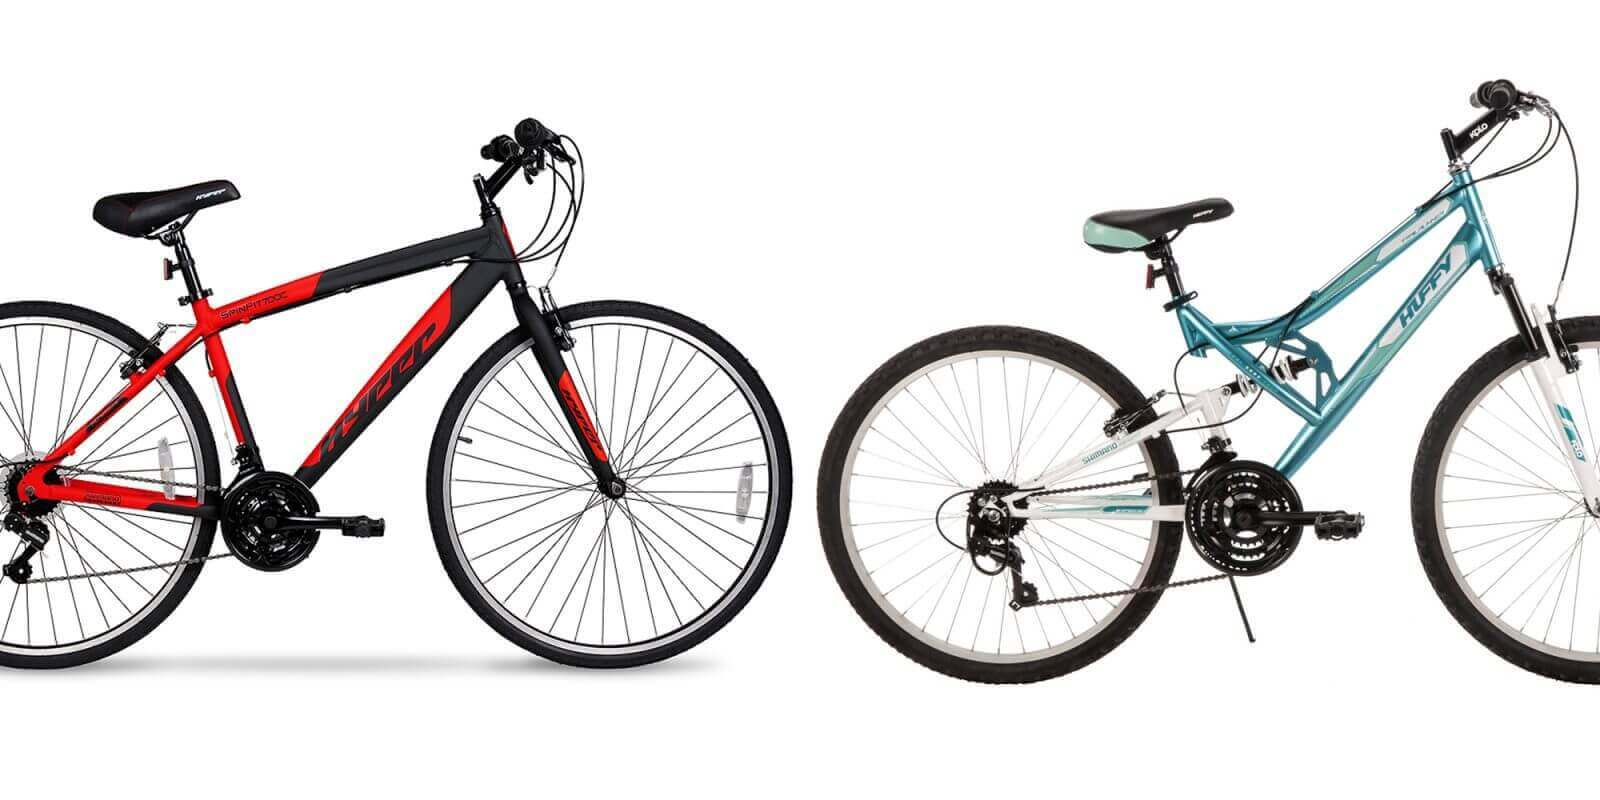 Difference Between Men's and Women's Mountain Bikes